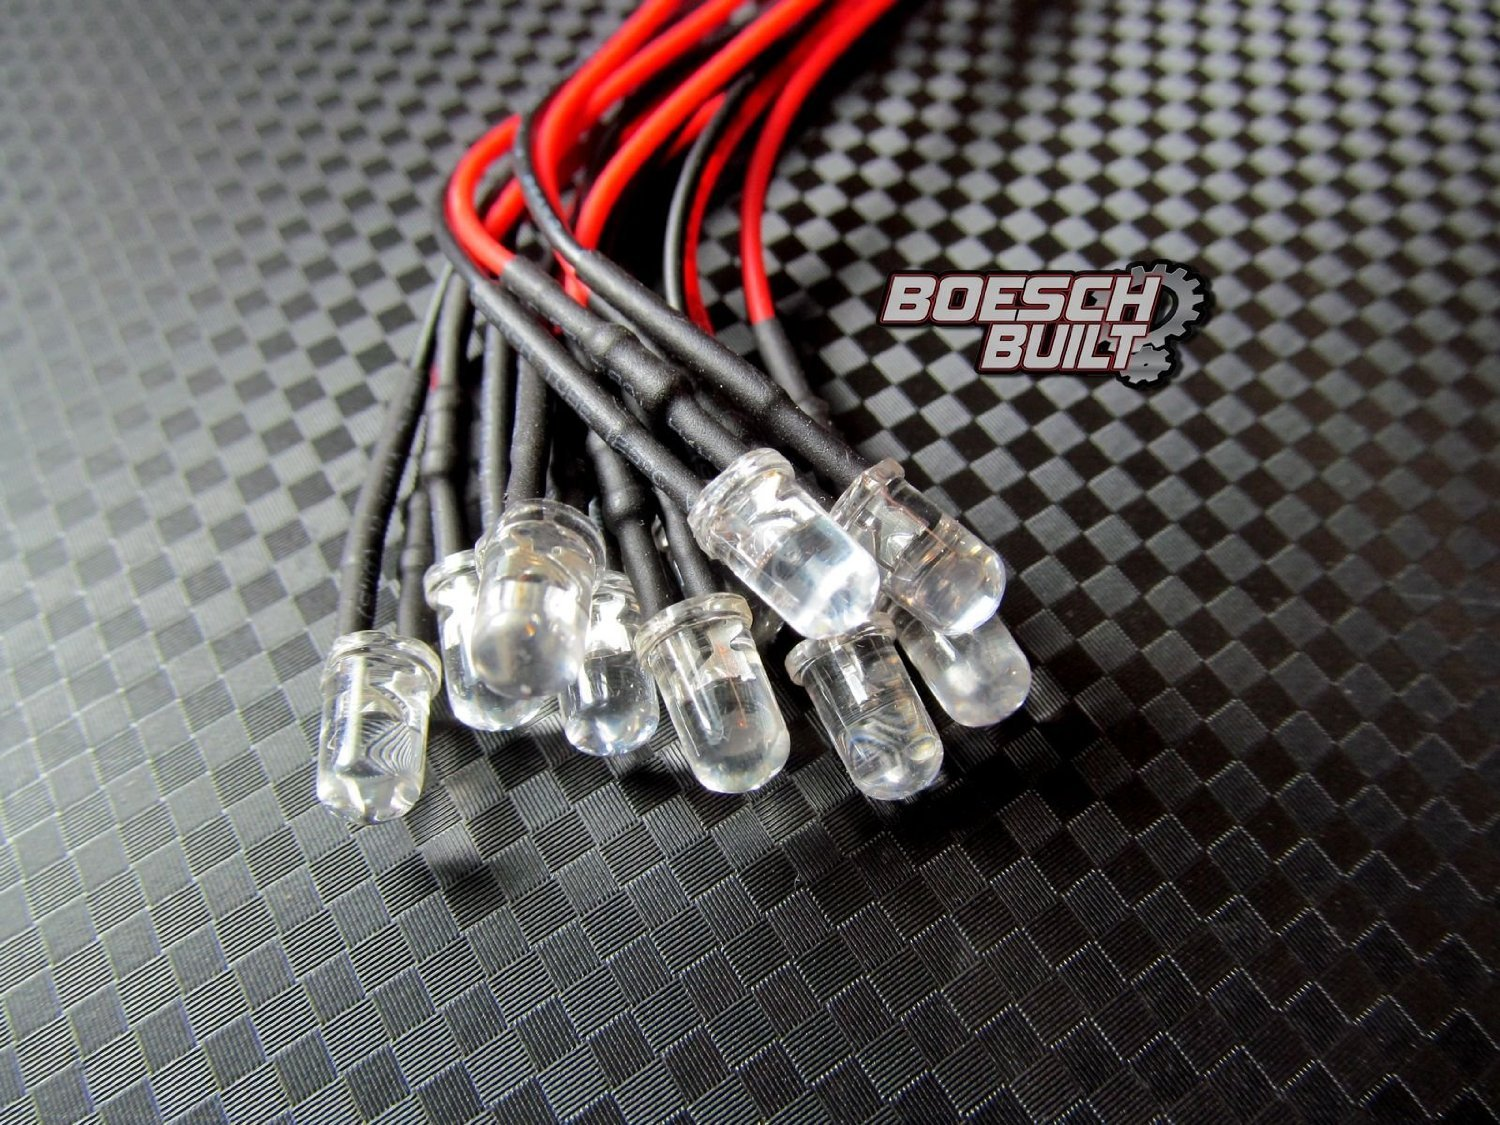 Amazon.com: Qty 10- LED Lights- 3mm, 5mm, 8mm, 10mm pre wired 12 ...